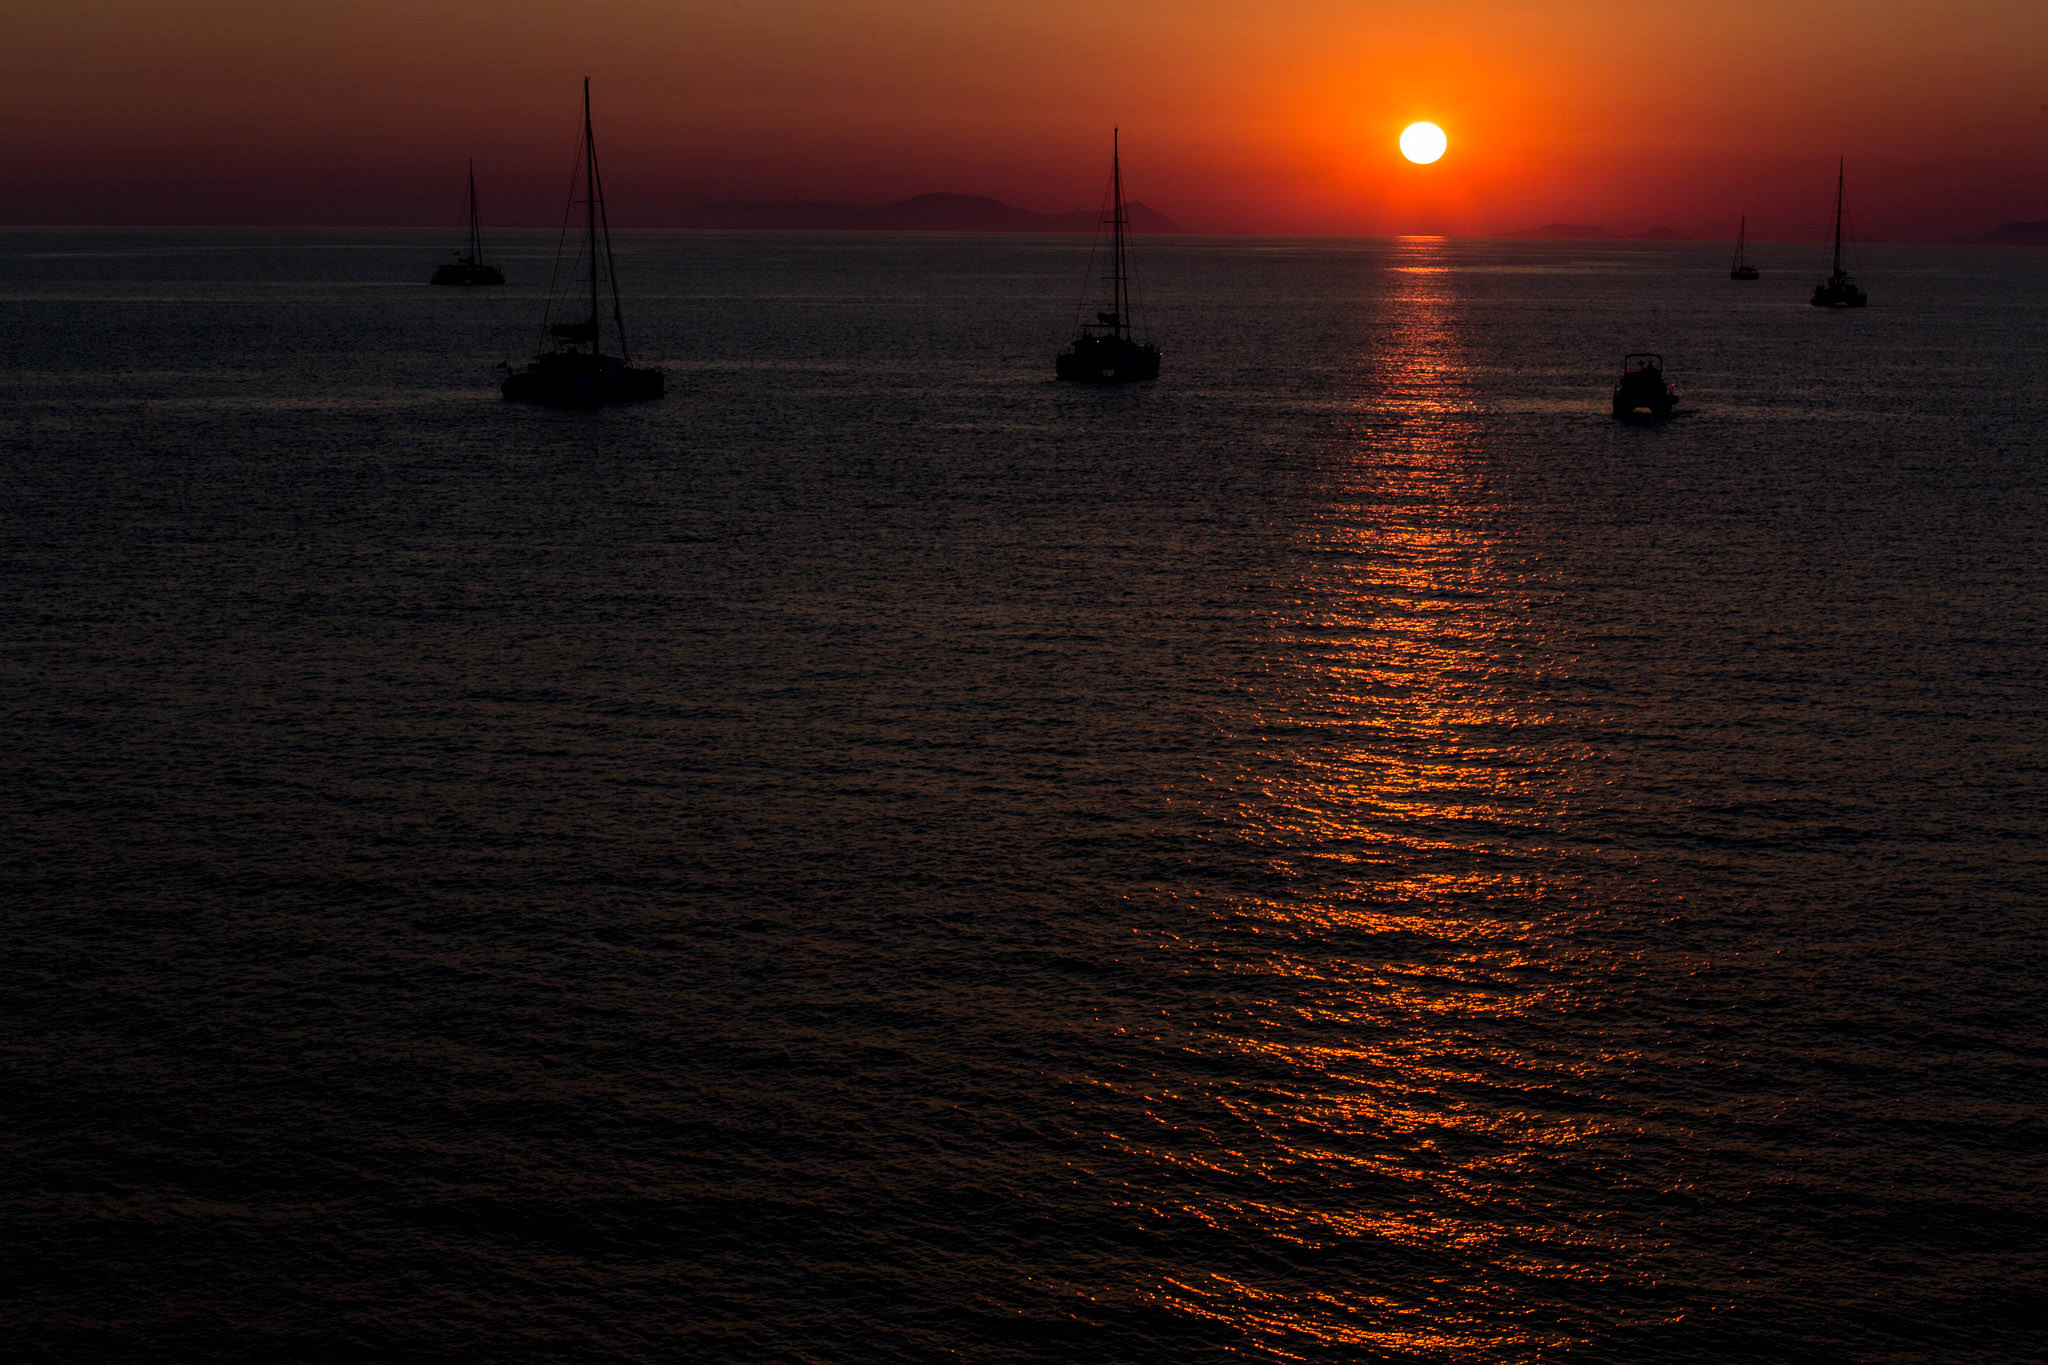 Sunset with silhouette sailboats on ocean near Oia